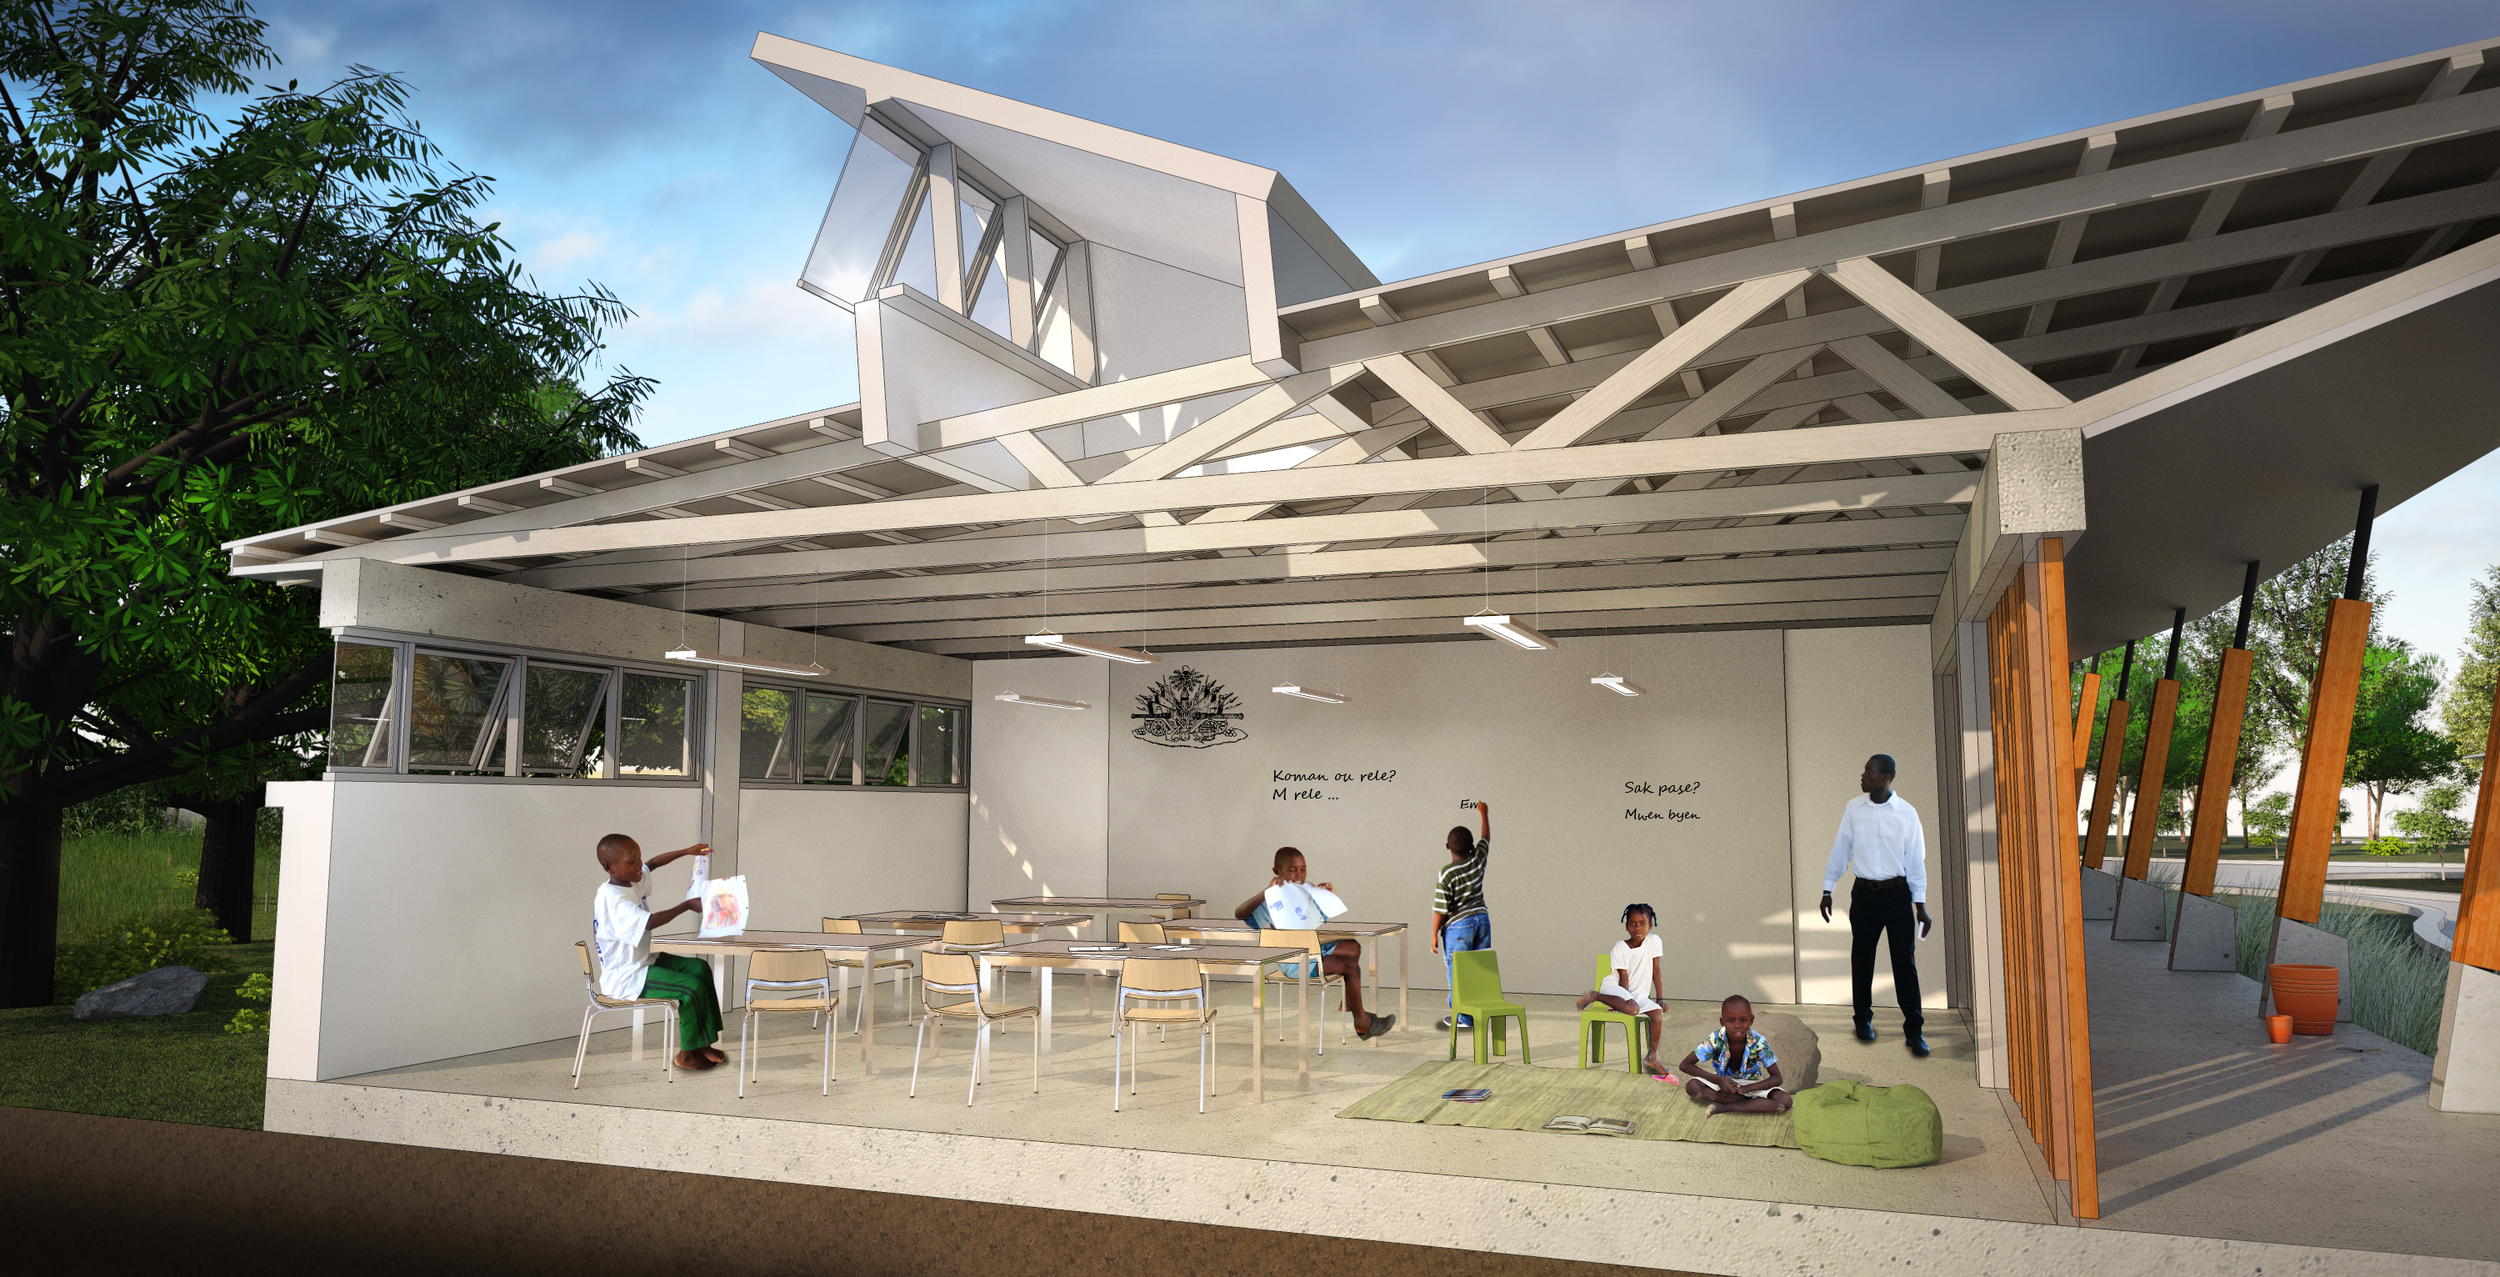 Rooftop monitors above each classroom provide daylight and facilitate natural ventilation